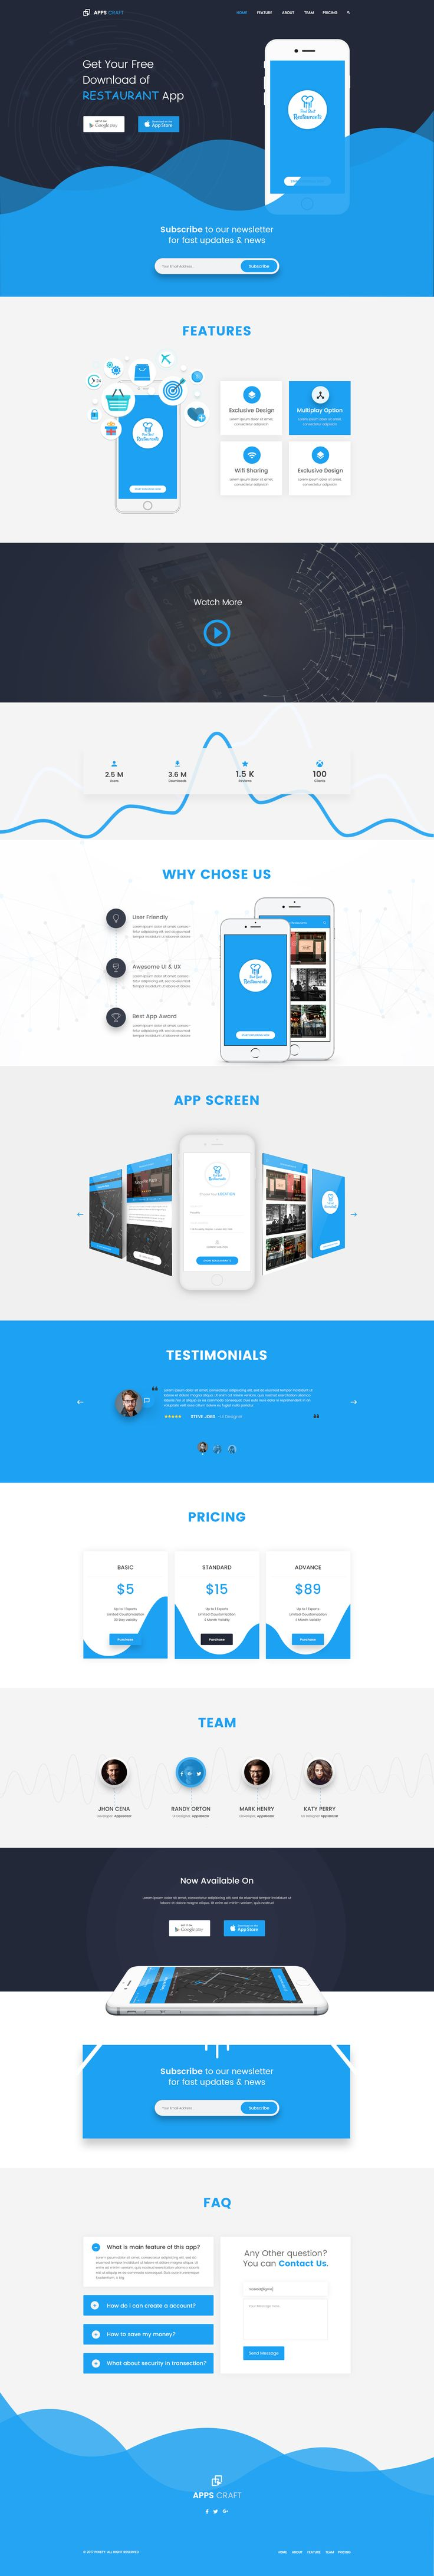 Apps Craft - App Landing PSD Template #marketing landing page #marketing template #mobile app • Download ➝ https://themeforest.net/item/apps-craft-app-landing-psd-template/19675499?ref=pxcr